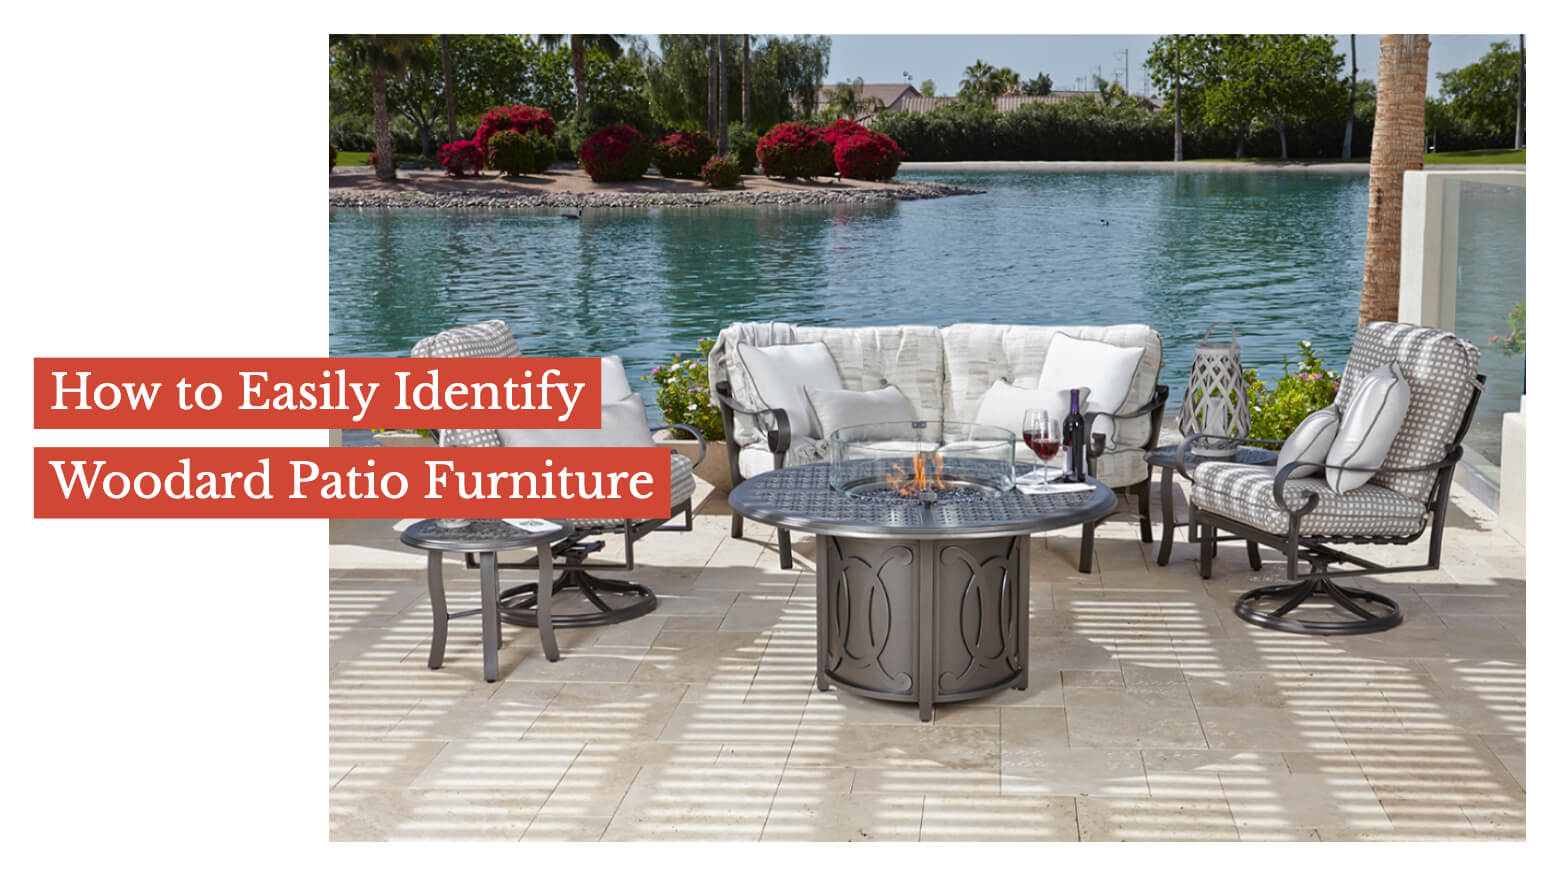 How to Easily Identify Woodard Patio Furniture